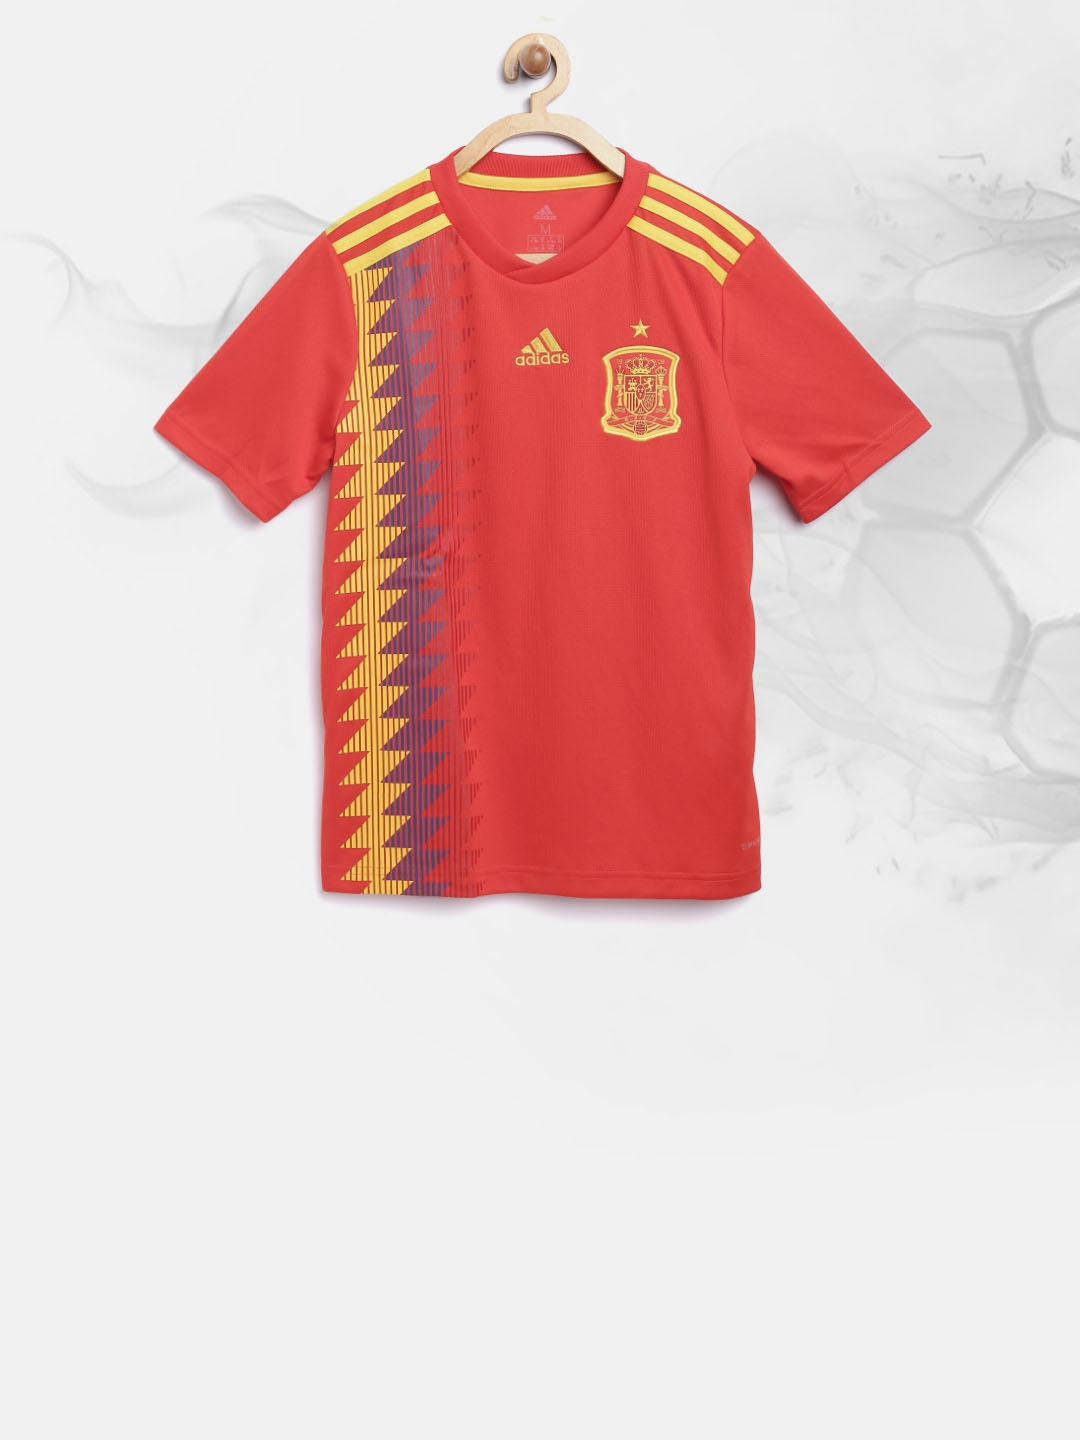 99e2fdf8b Buy ADIDAS Boys Red Football Spain Home Jersey Printed Round Neck T ...